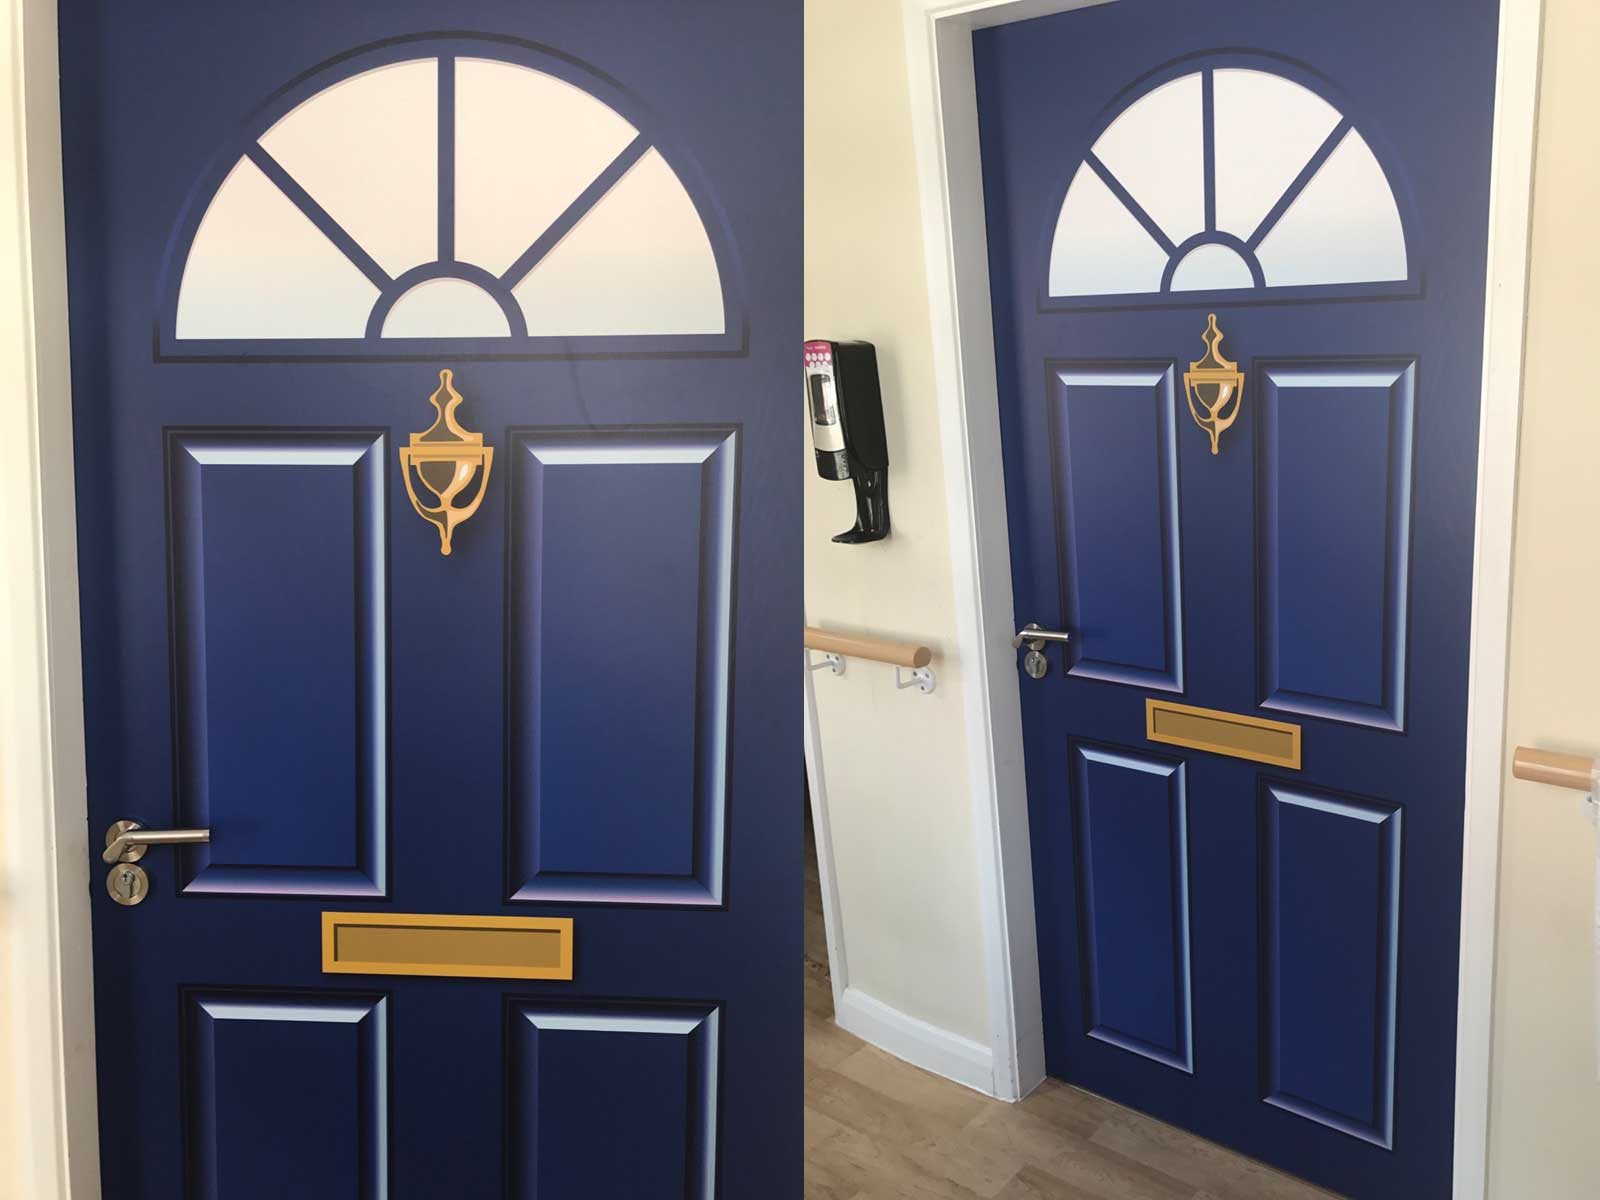 Dementia Door Wrap For Care Homes And Hospitals